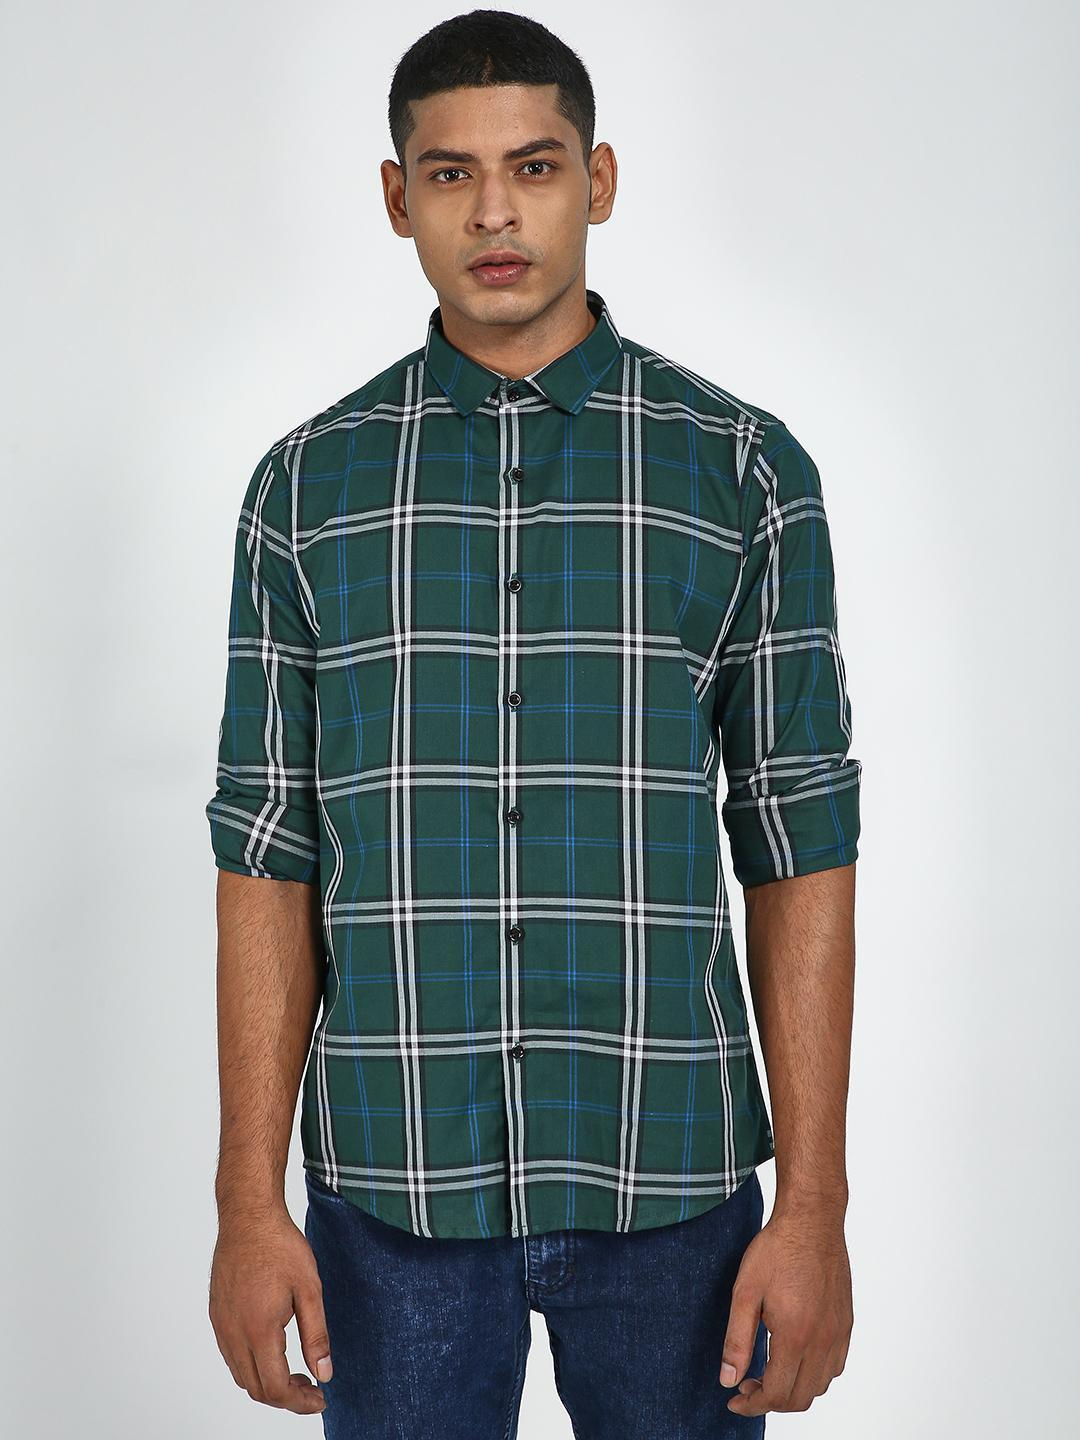 Green Hill Green All Over Check Print Causal Shirt 1